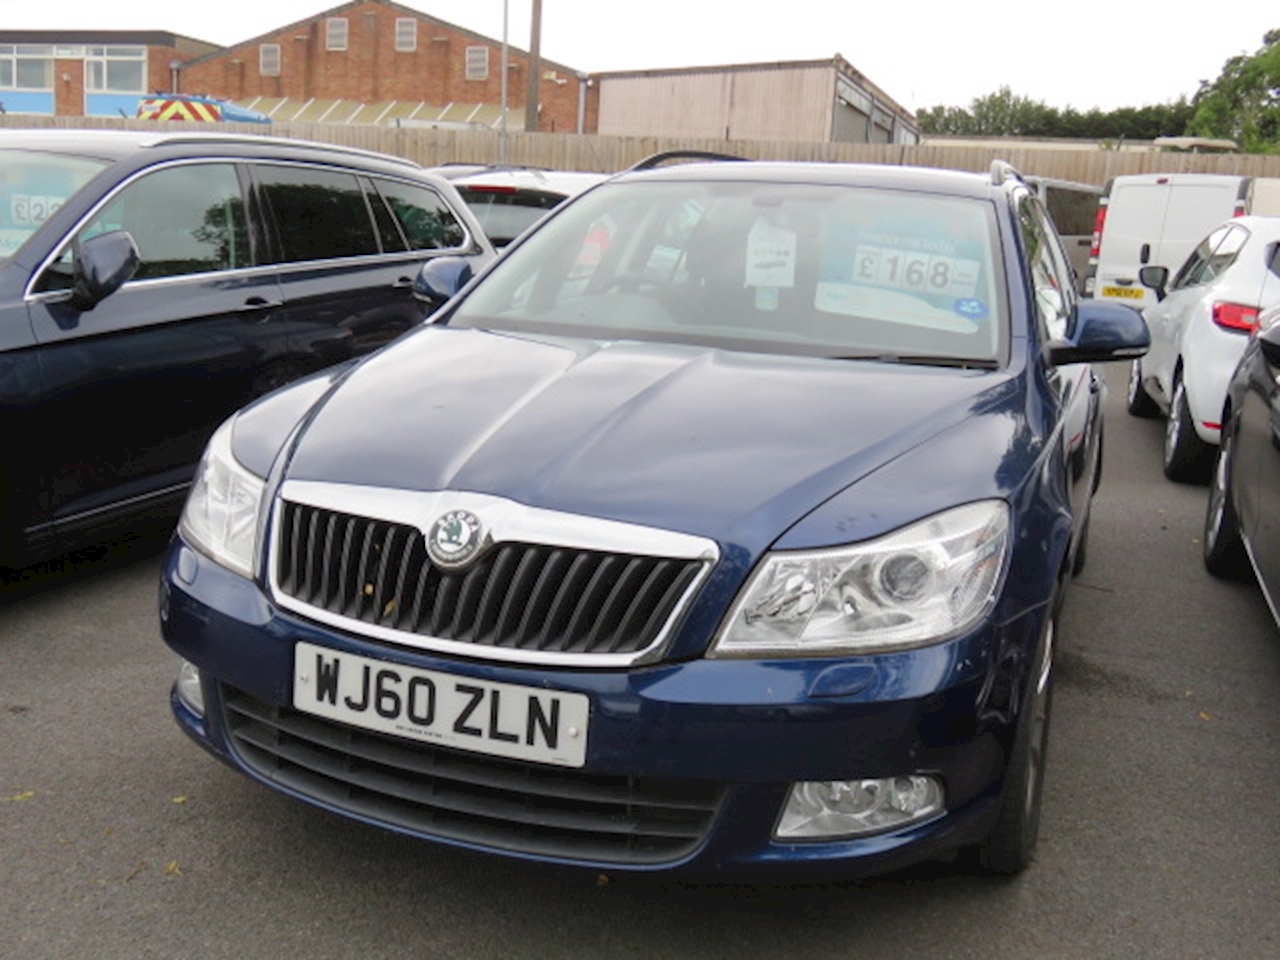 SKODA Octavia Elegance Estate 1.4 Manual Petrol